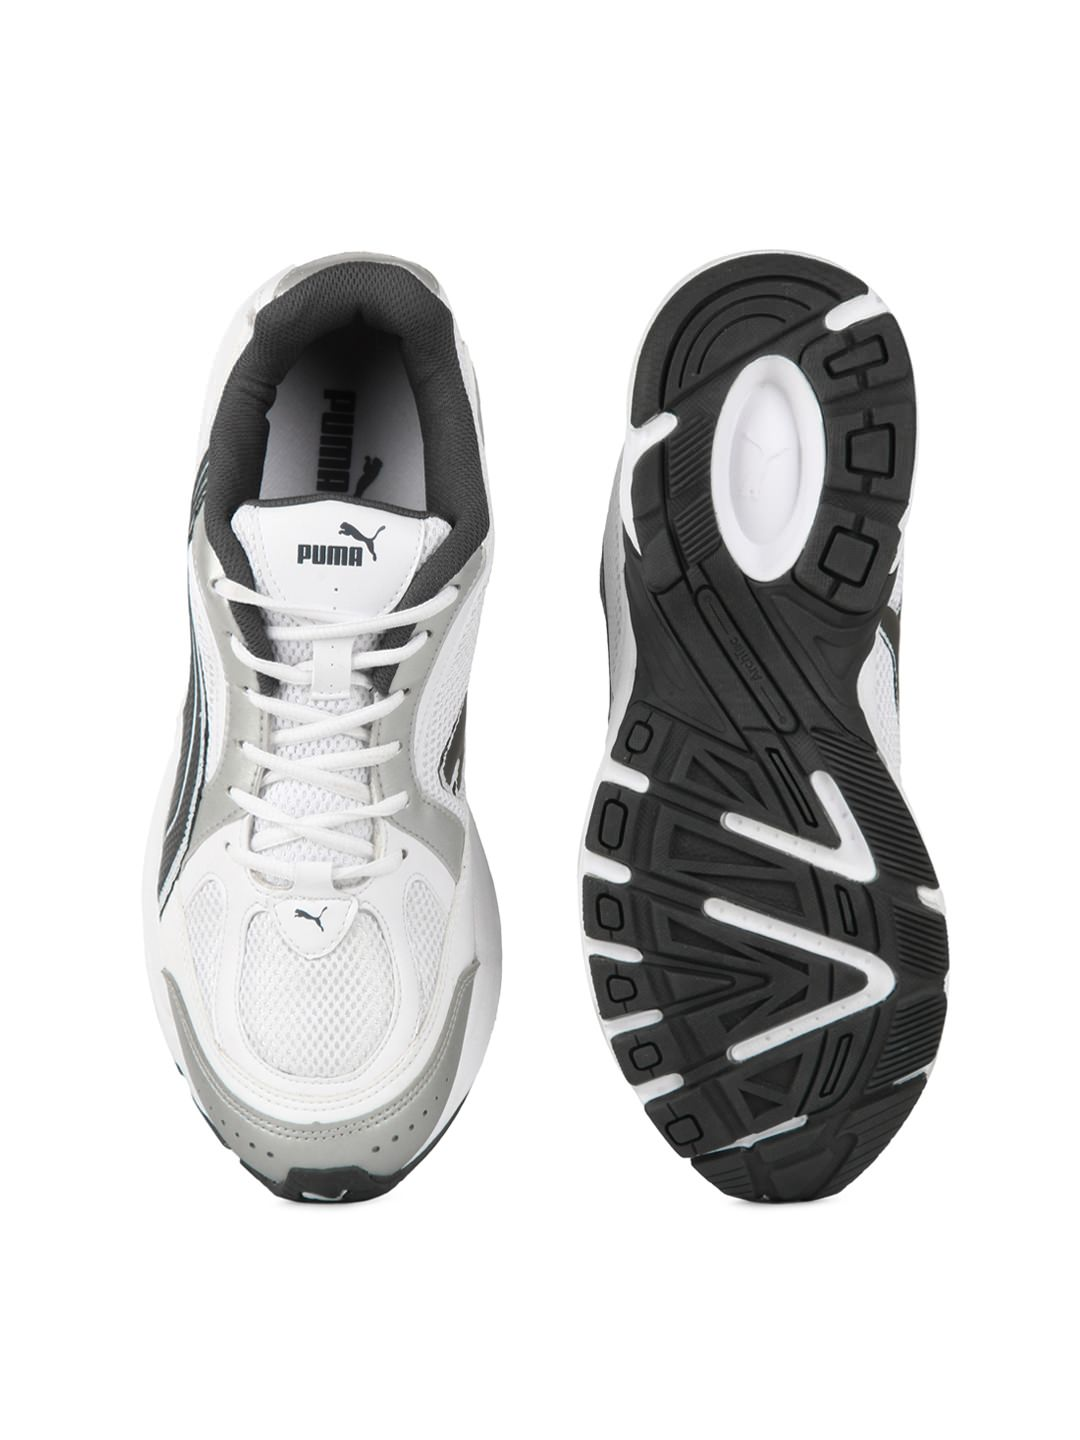 Puma men white & grey ceylon II sports shoes at Rs.2999